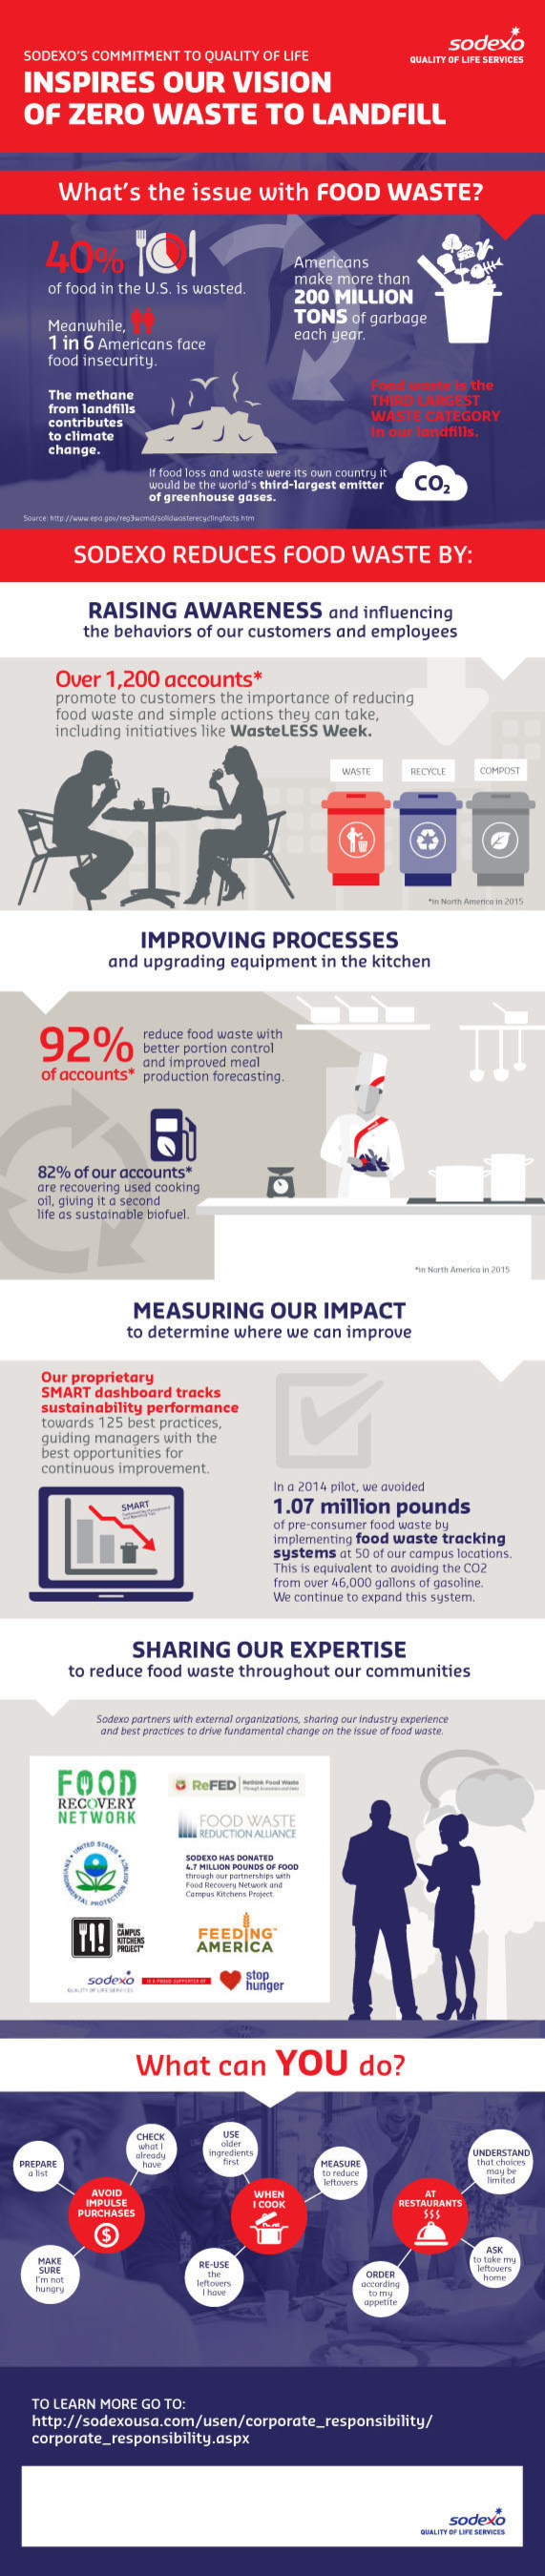 Sodexo Food Waste Infographic